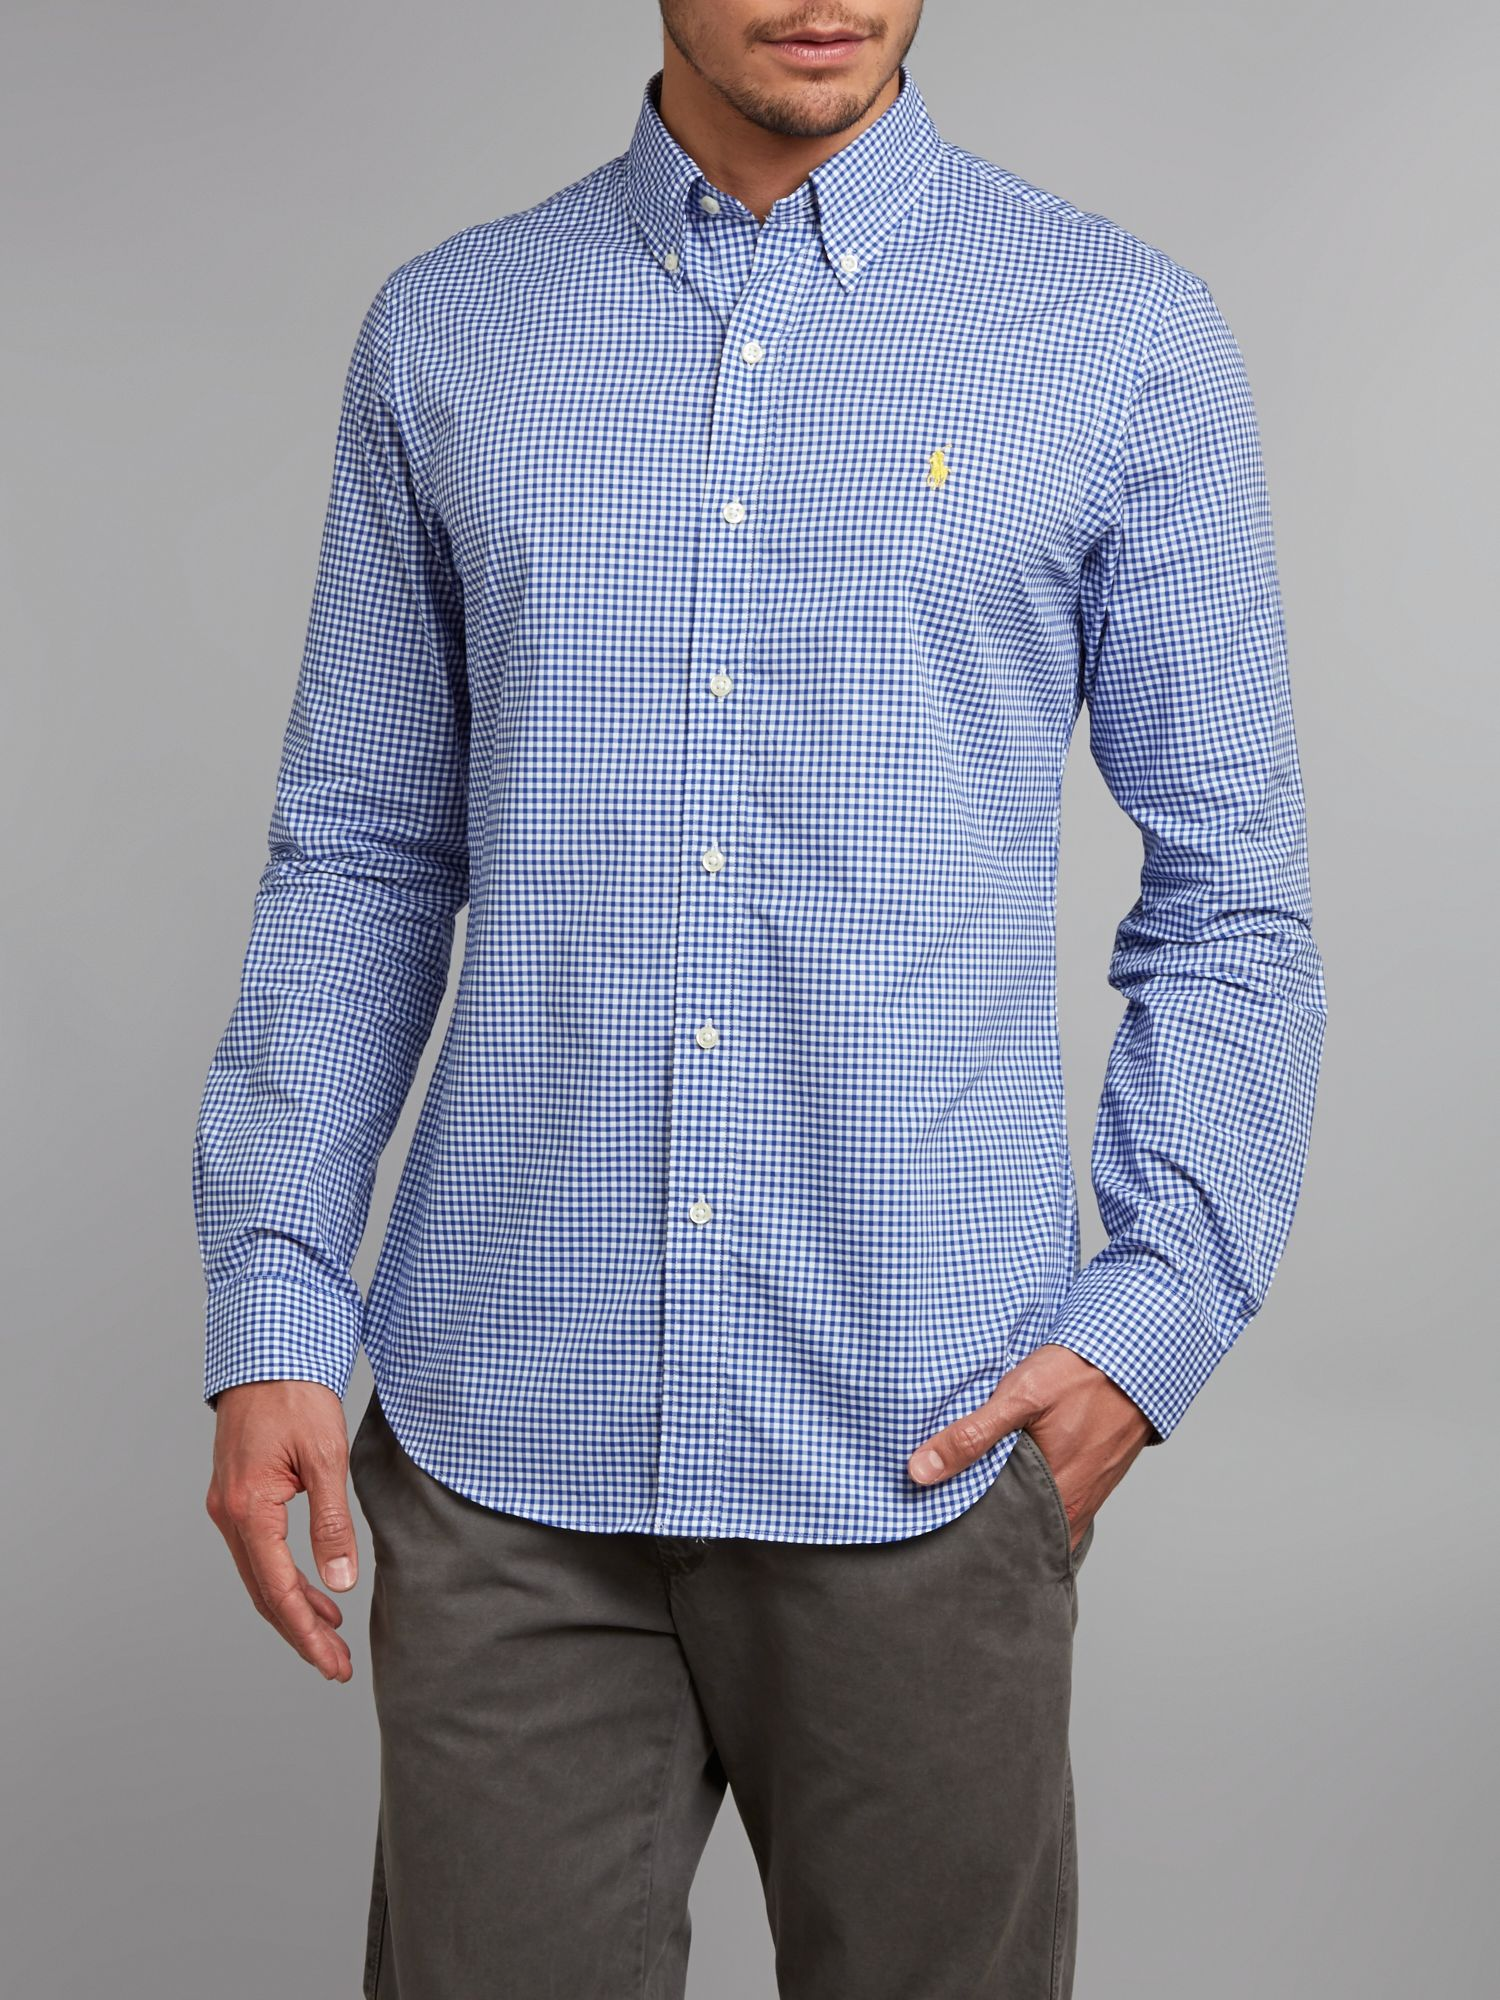 Polo Ralph Lauren Slim Fit Gingham Check Shirt In Blue For